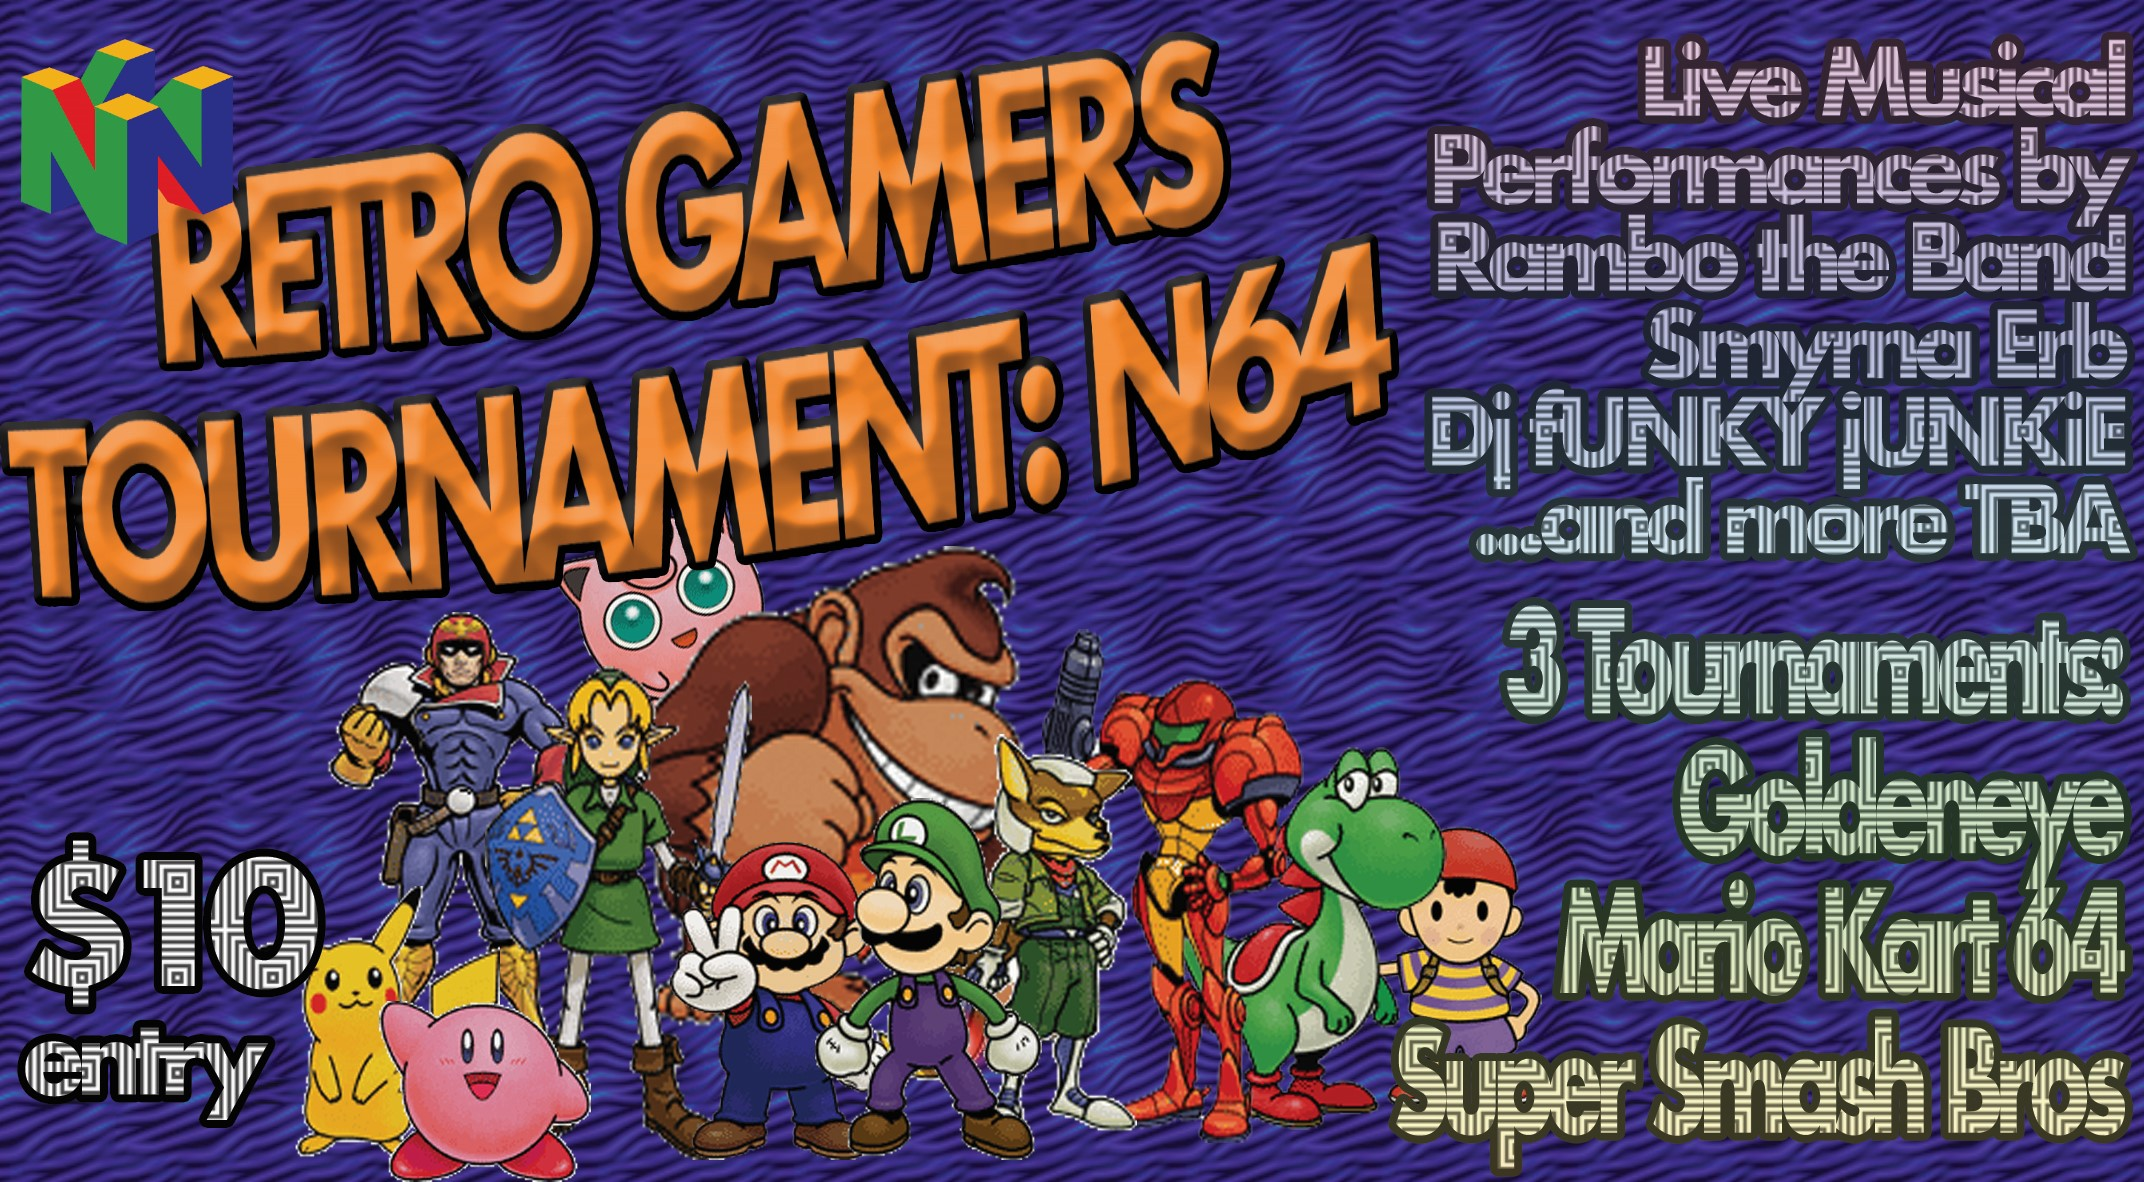 Retro Gamers Tournament: N64